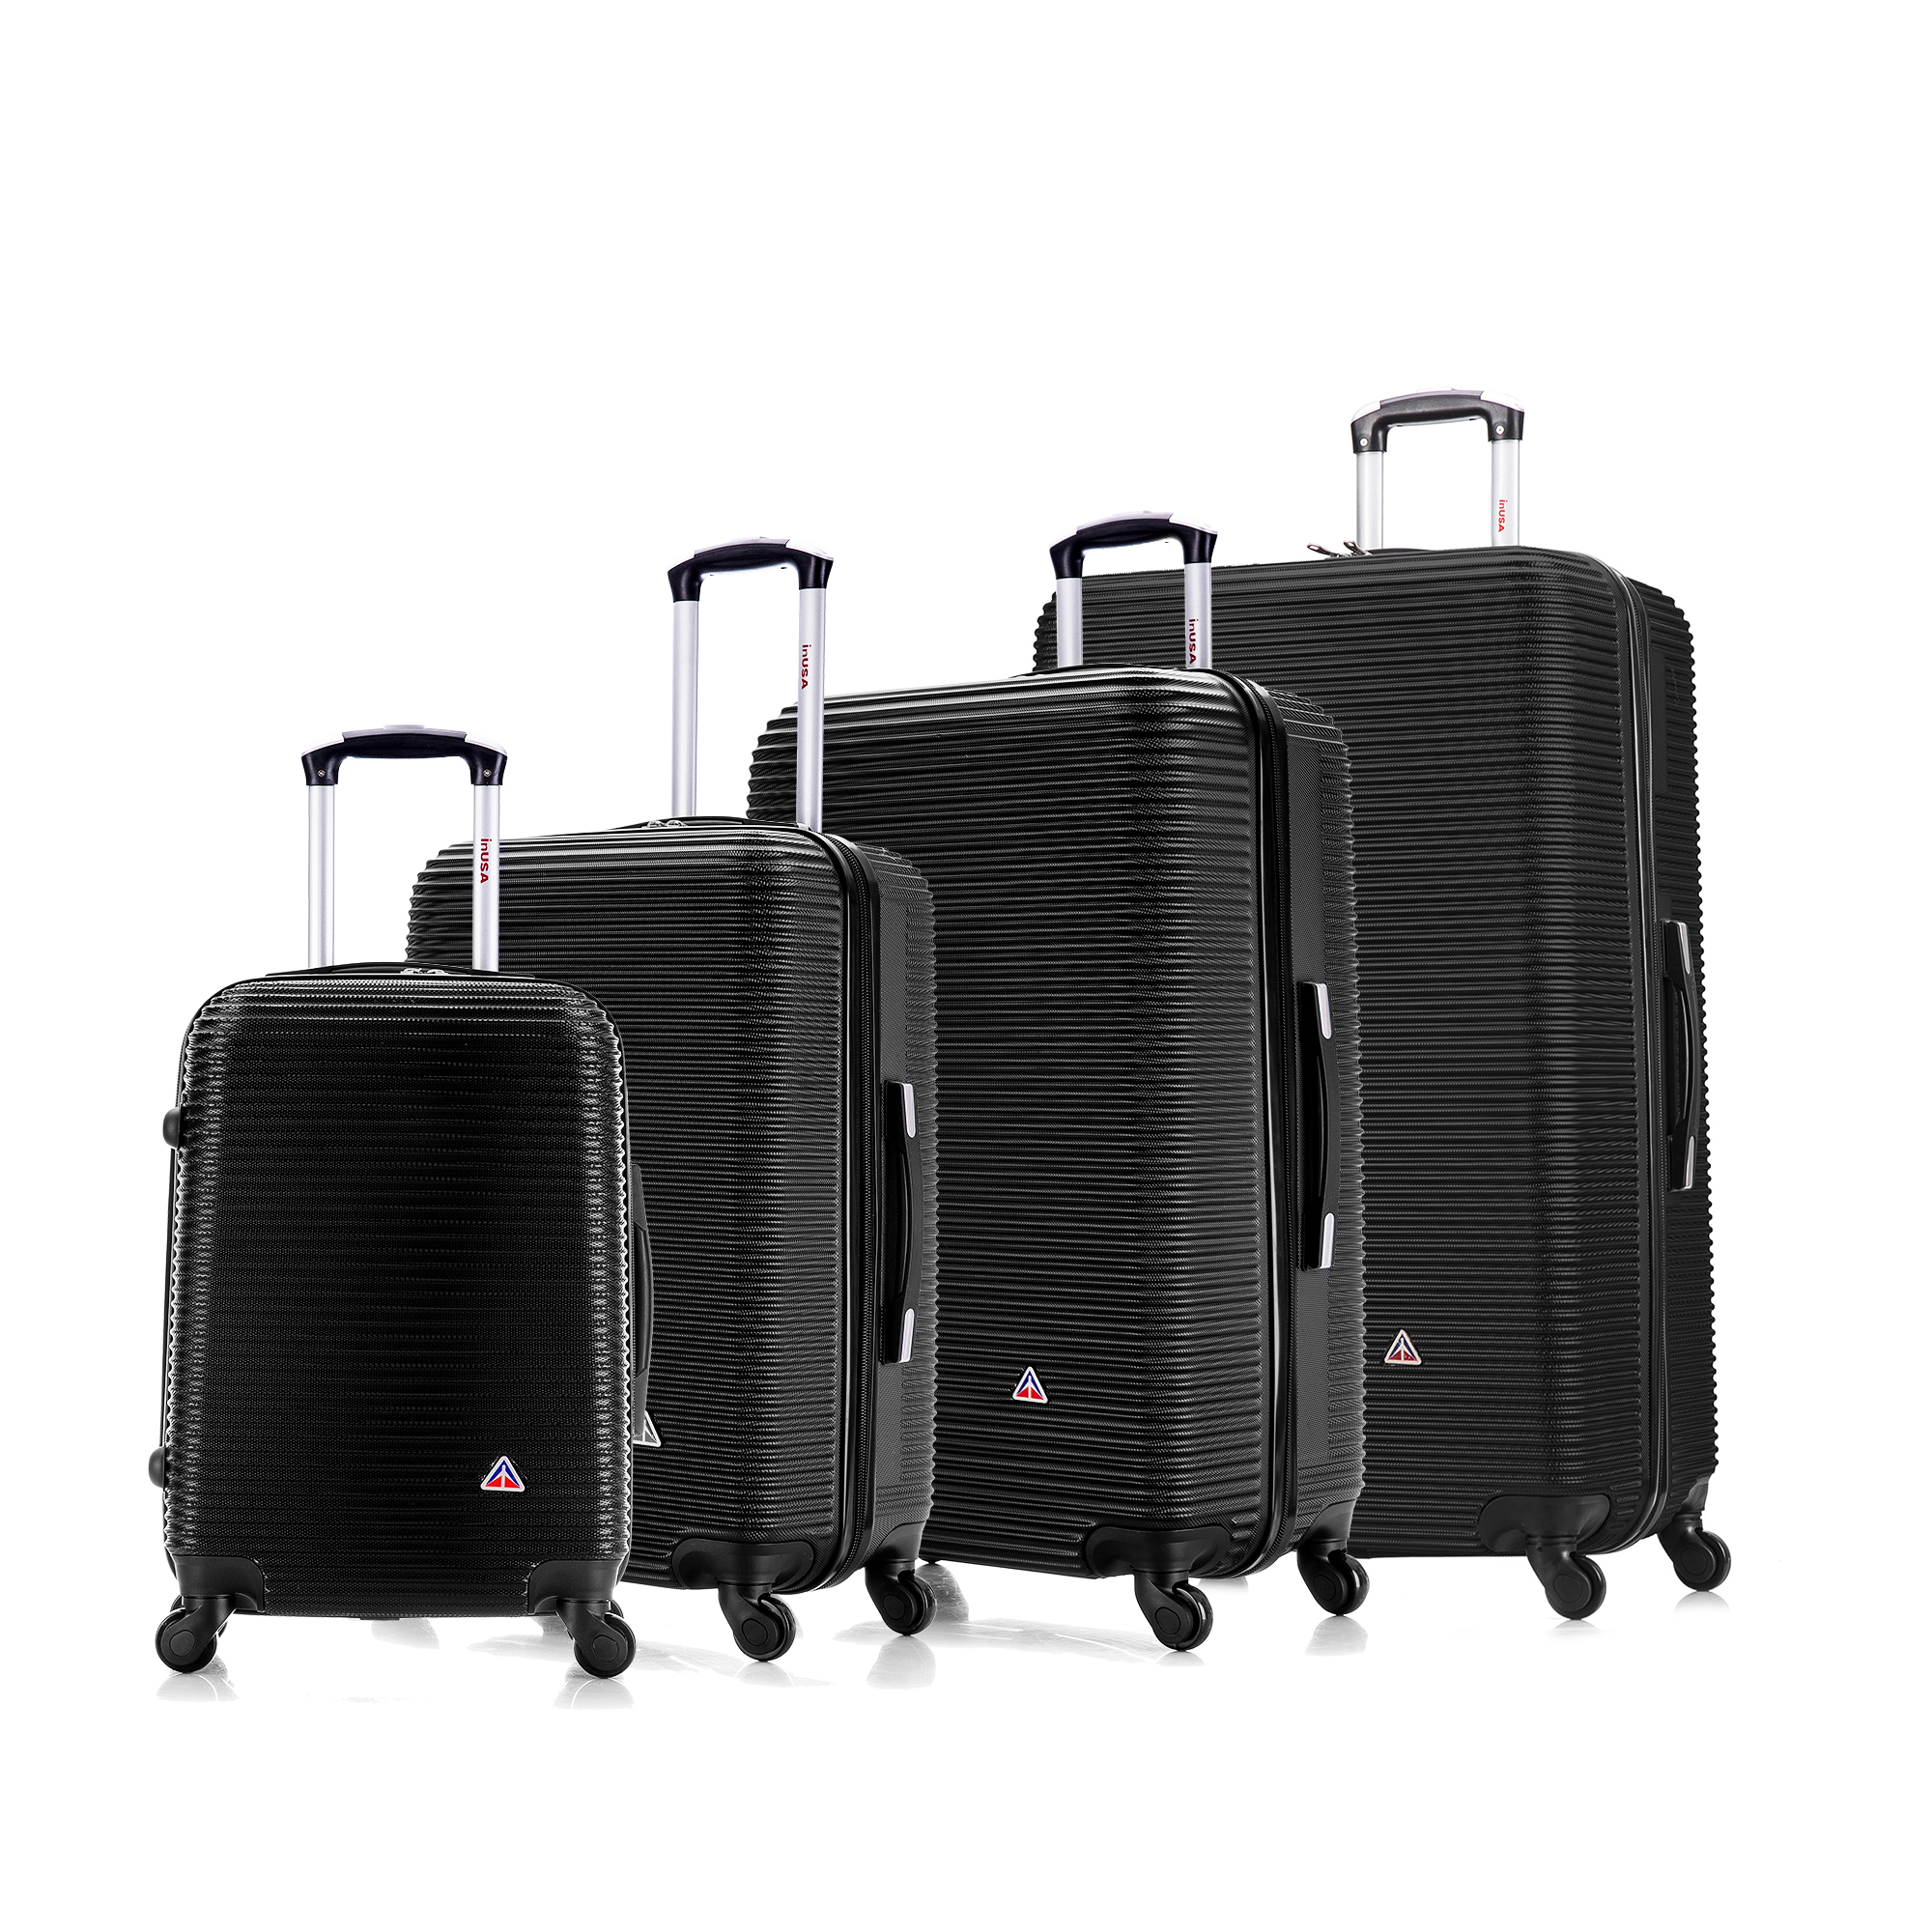 Lightweight Luggage 4 Wheels Spinner 28 Inches Hardside InUSA Royal Collection Black